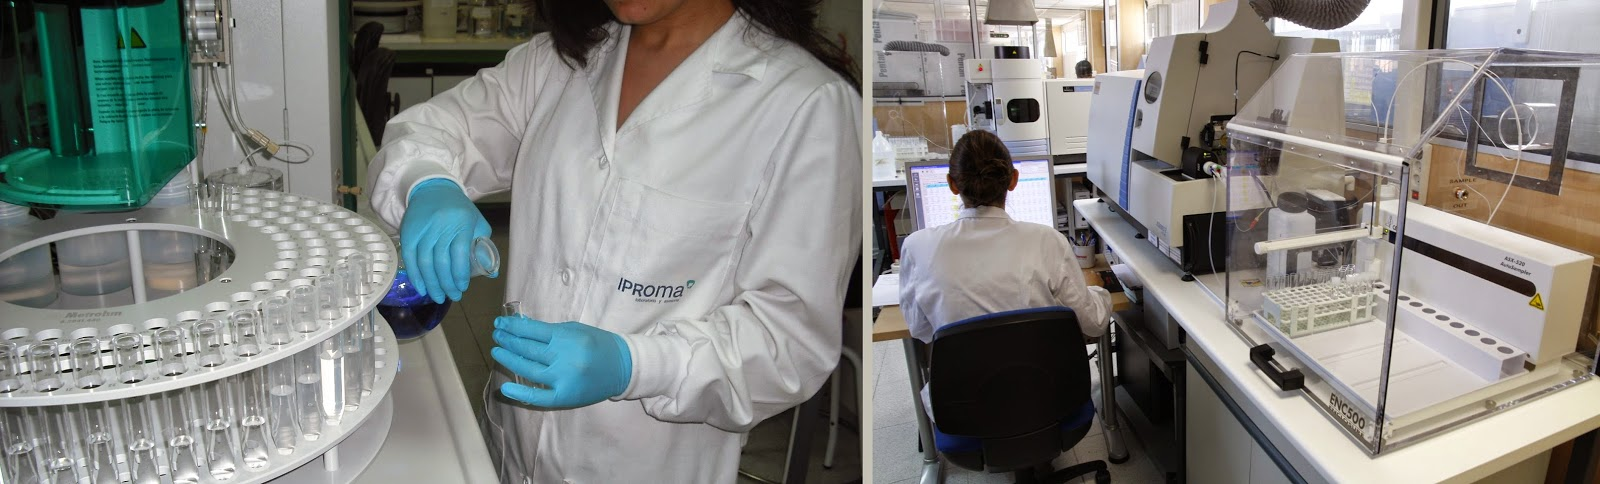 Laboratorio IPROMA2